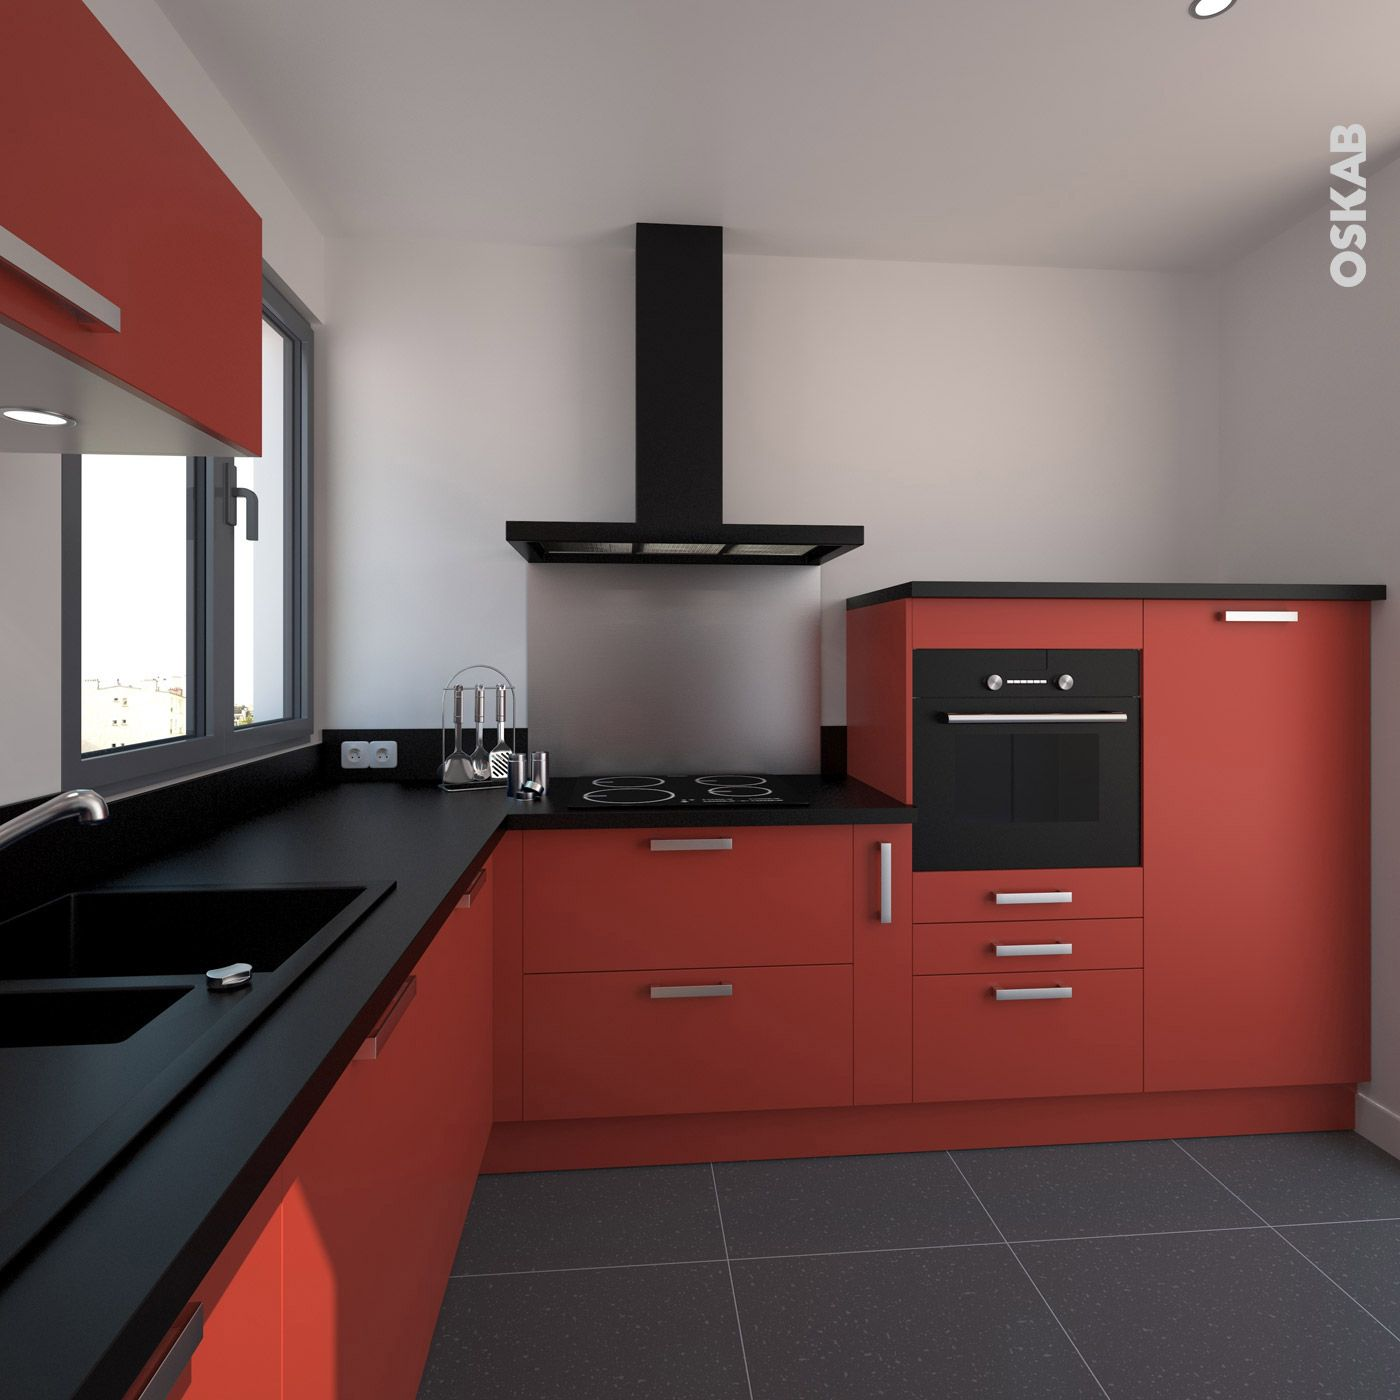 cuisine rouge porte effet soft touch ginko rouge mat hotte inox poignee meuble et plan de. Black Bedroom Furniture Sets. Home Design Ideas